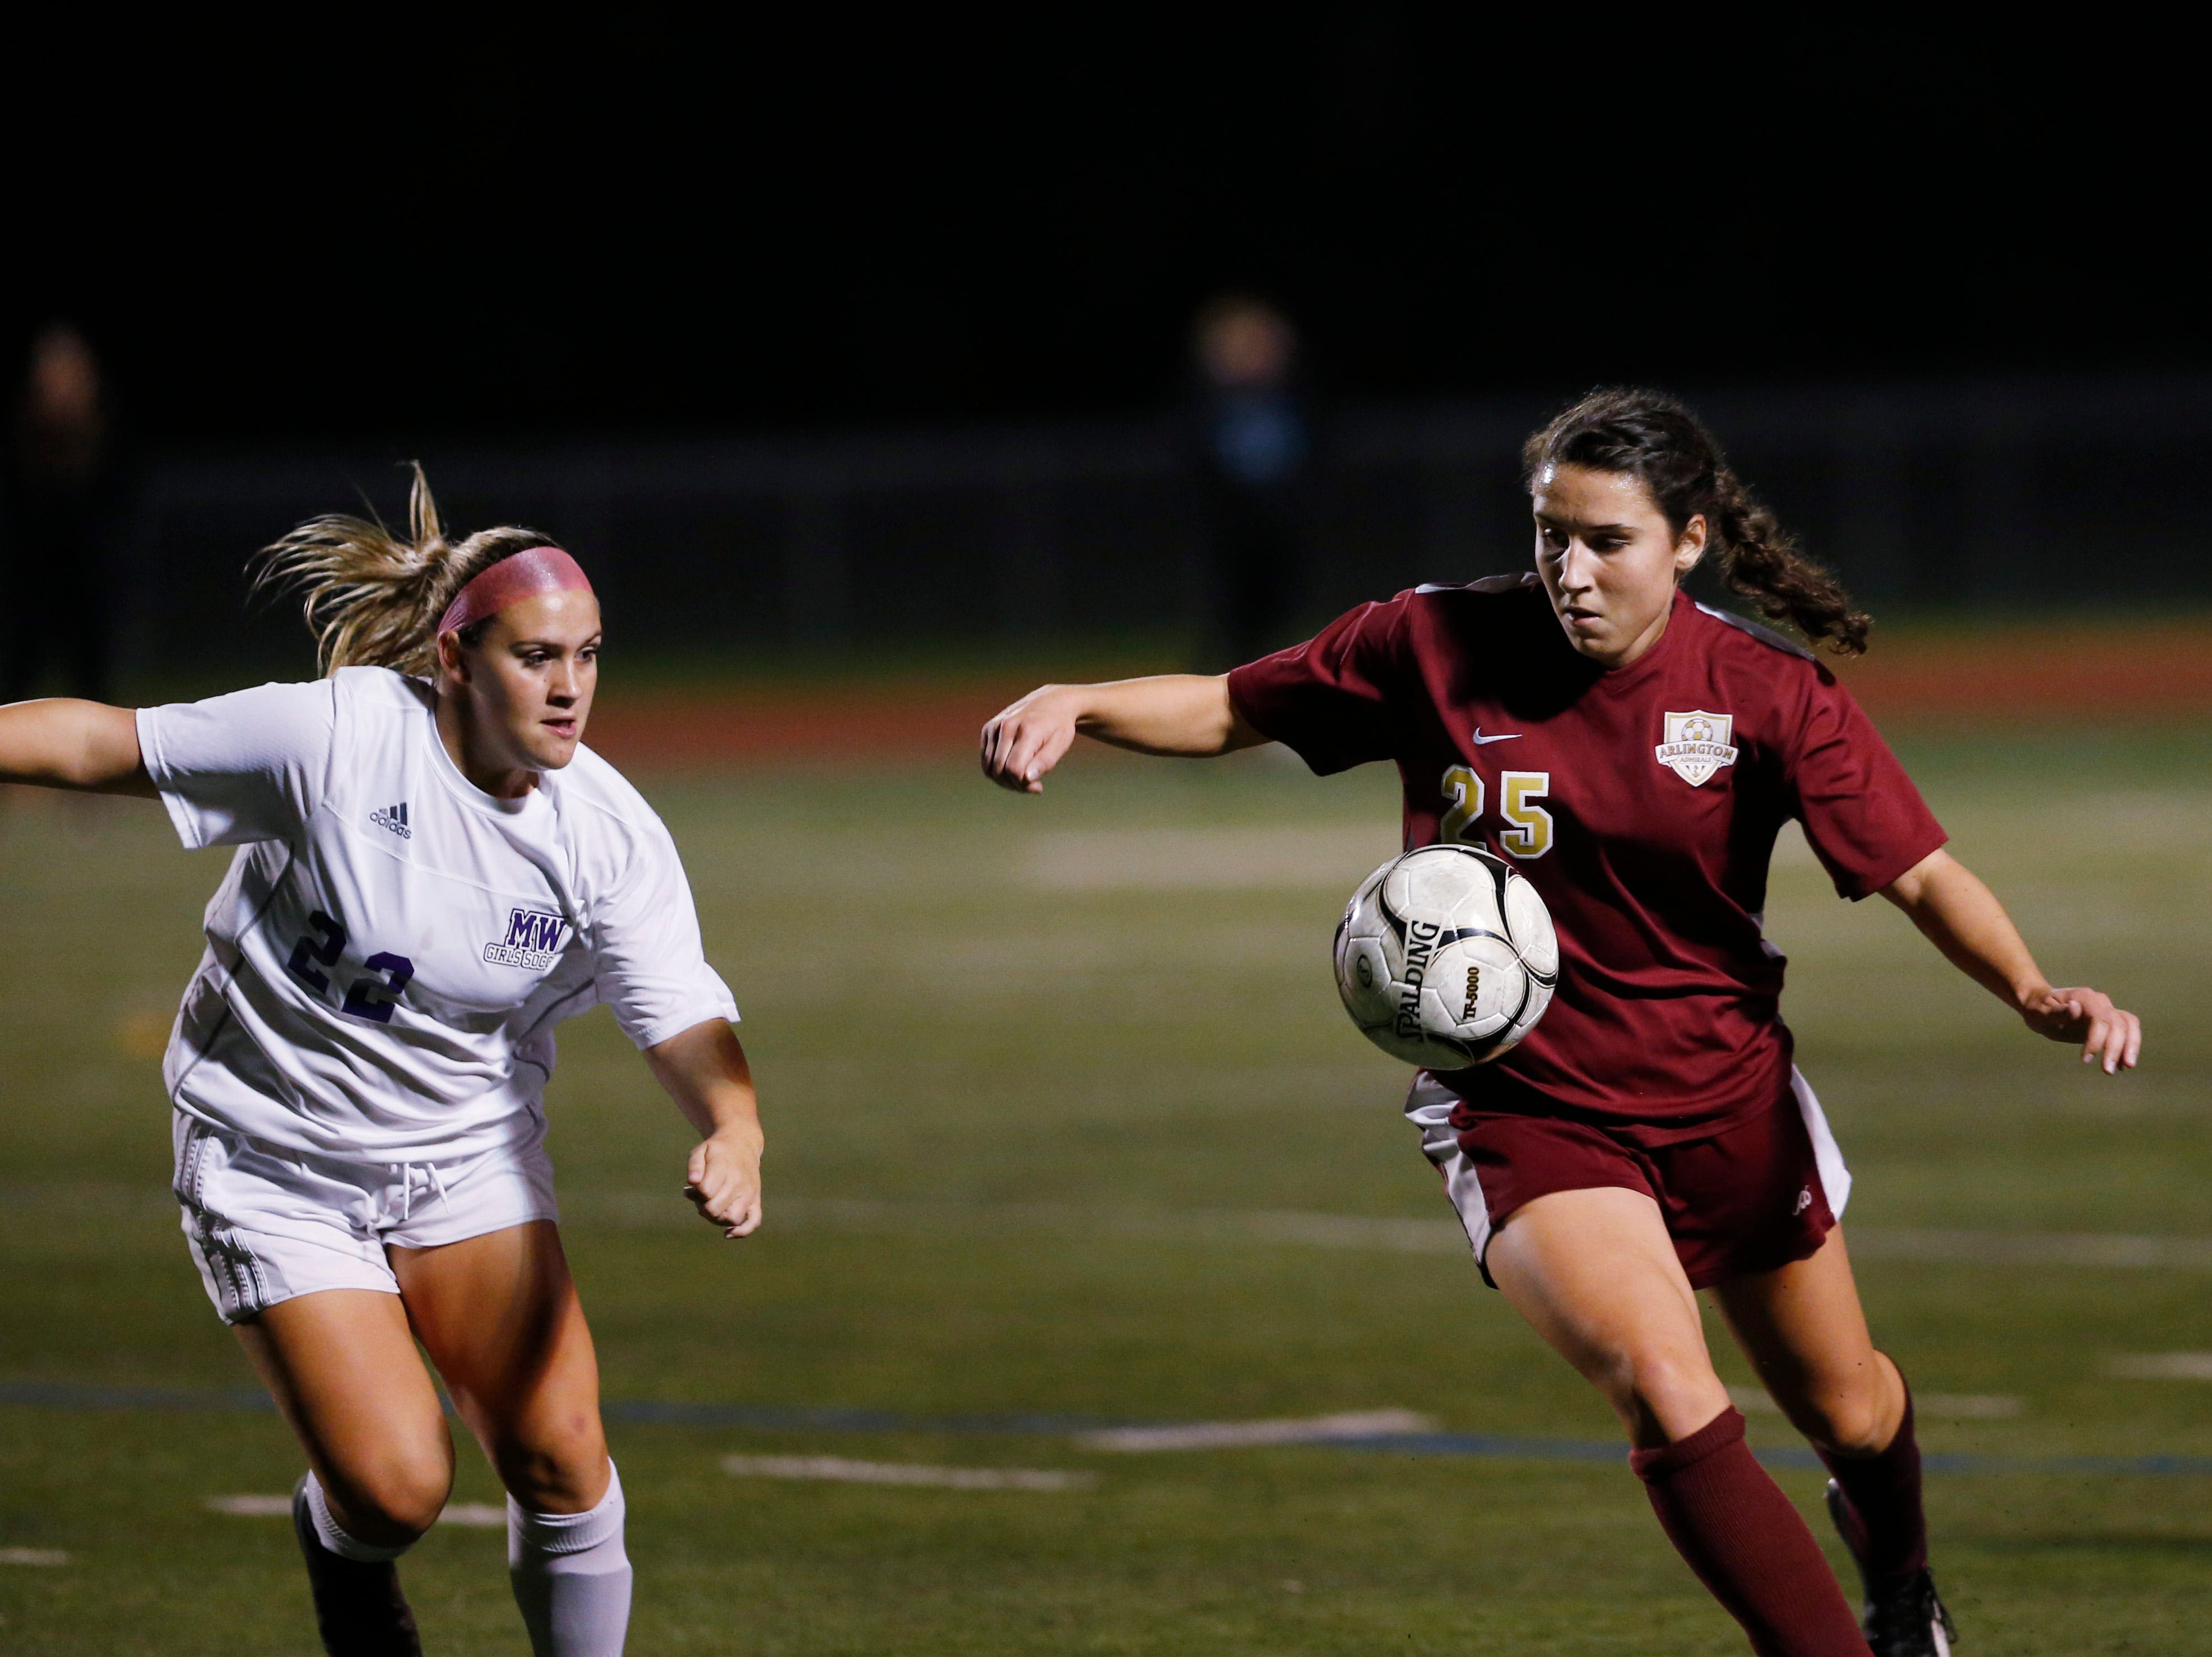 Arlington's Kelly Koster traps the ball as Monroe-Woodbury's Kayla Bauer closes in on her during Wednesday's class AA regional semifinal in Freedom Plains on October 31, 2018.